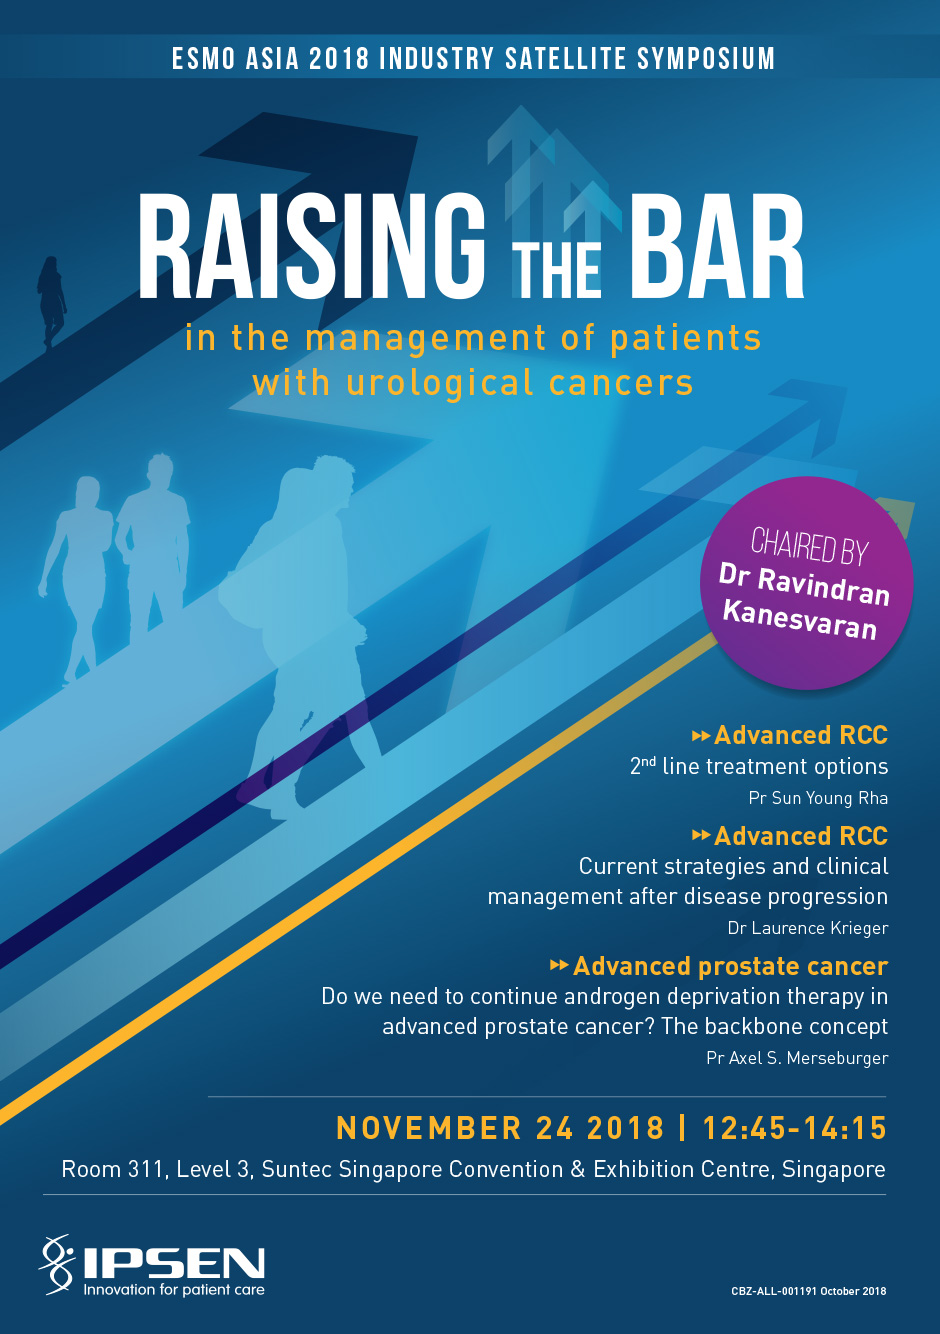 Raising the Bar in the Management of Patients with Urological Cancers